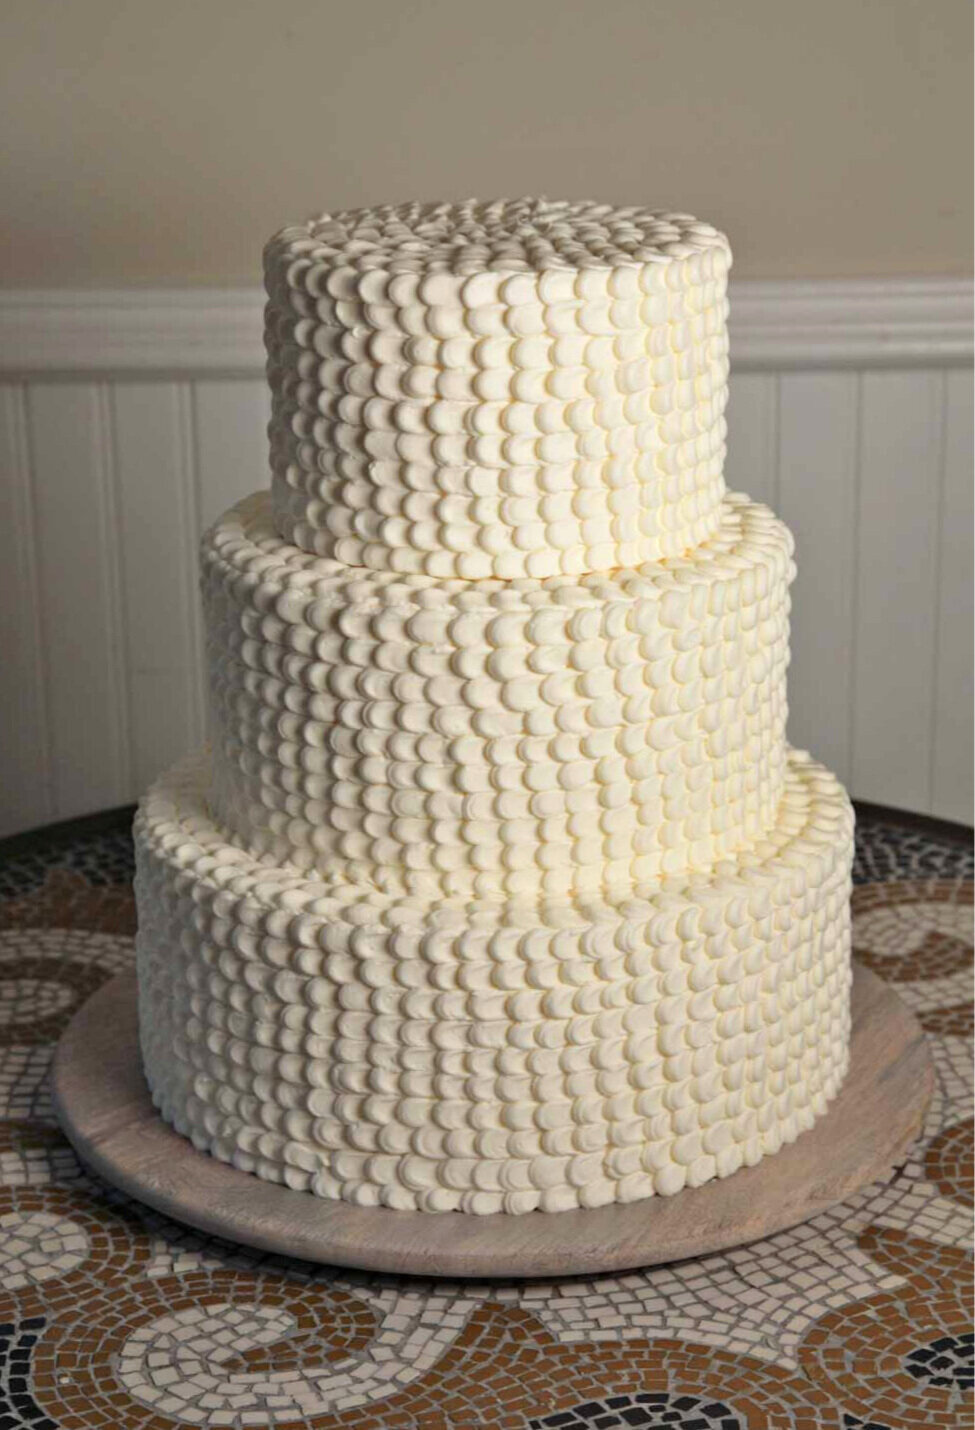 sweet-wedding-cake1.jpg